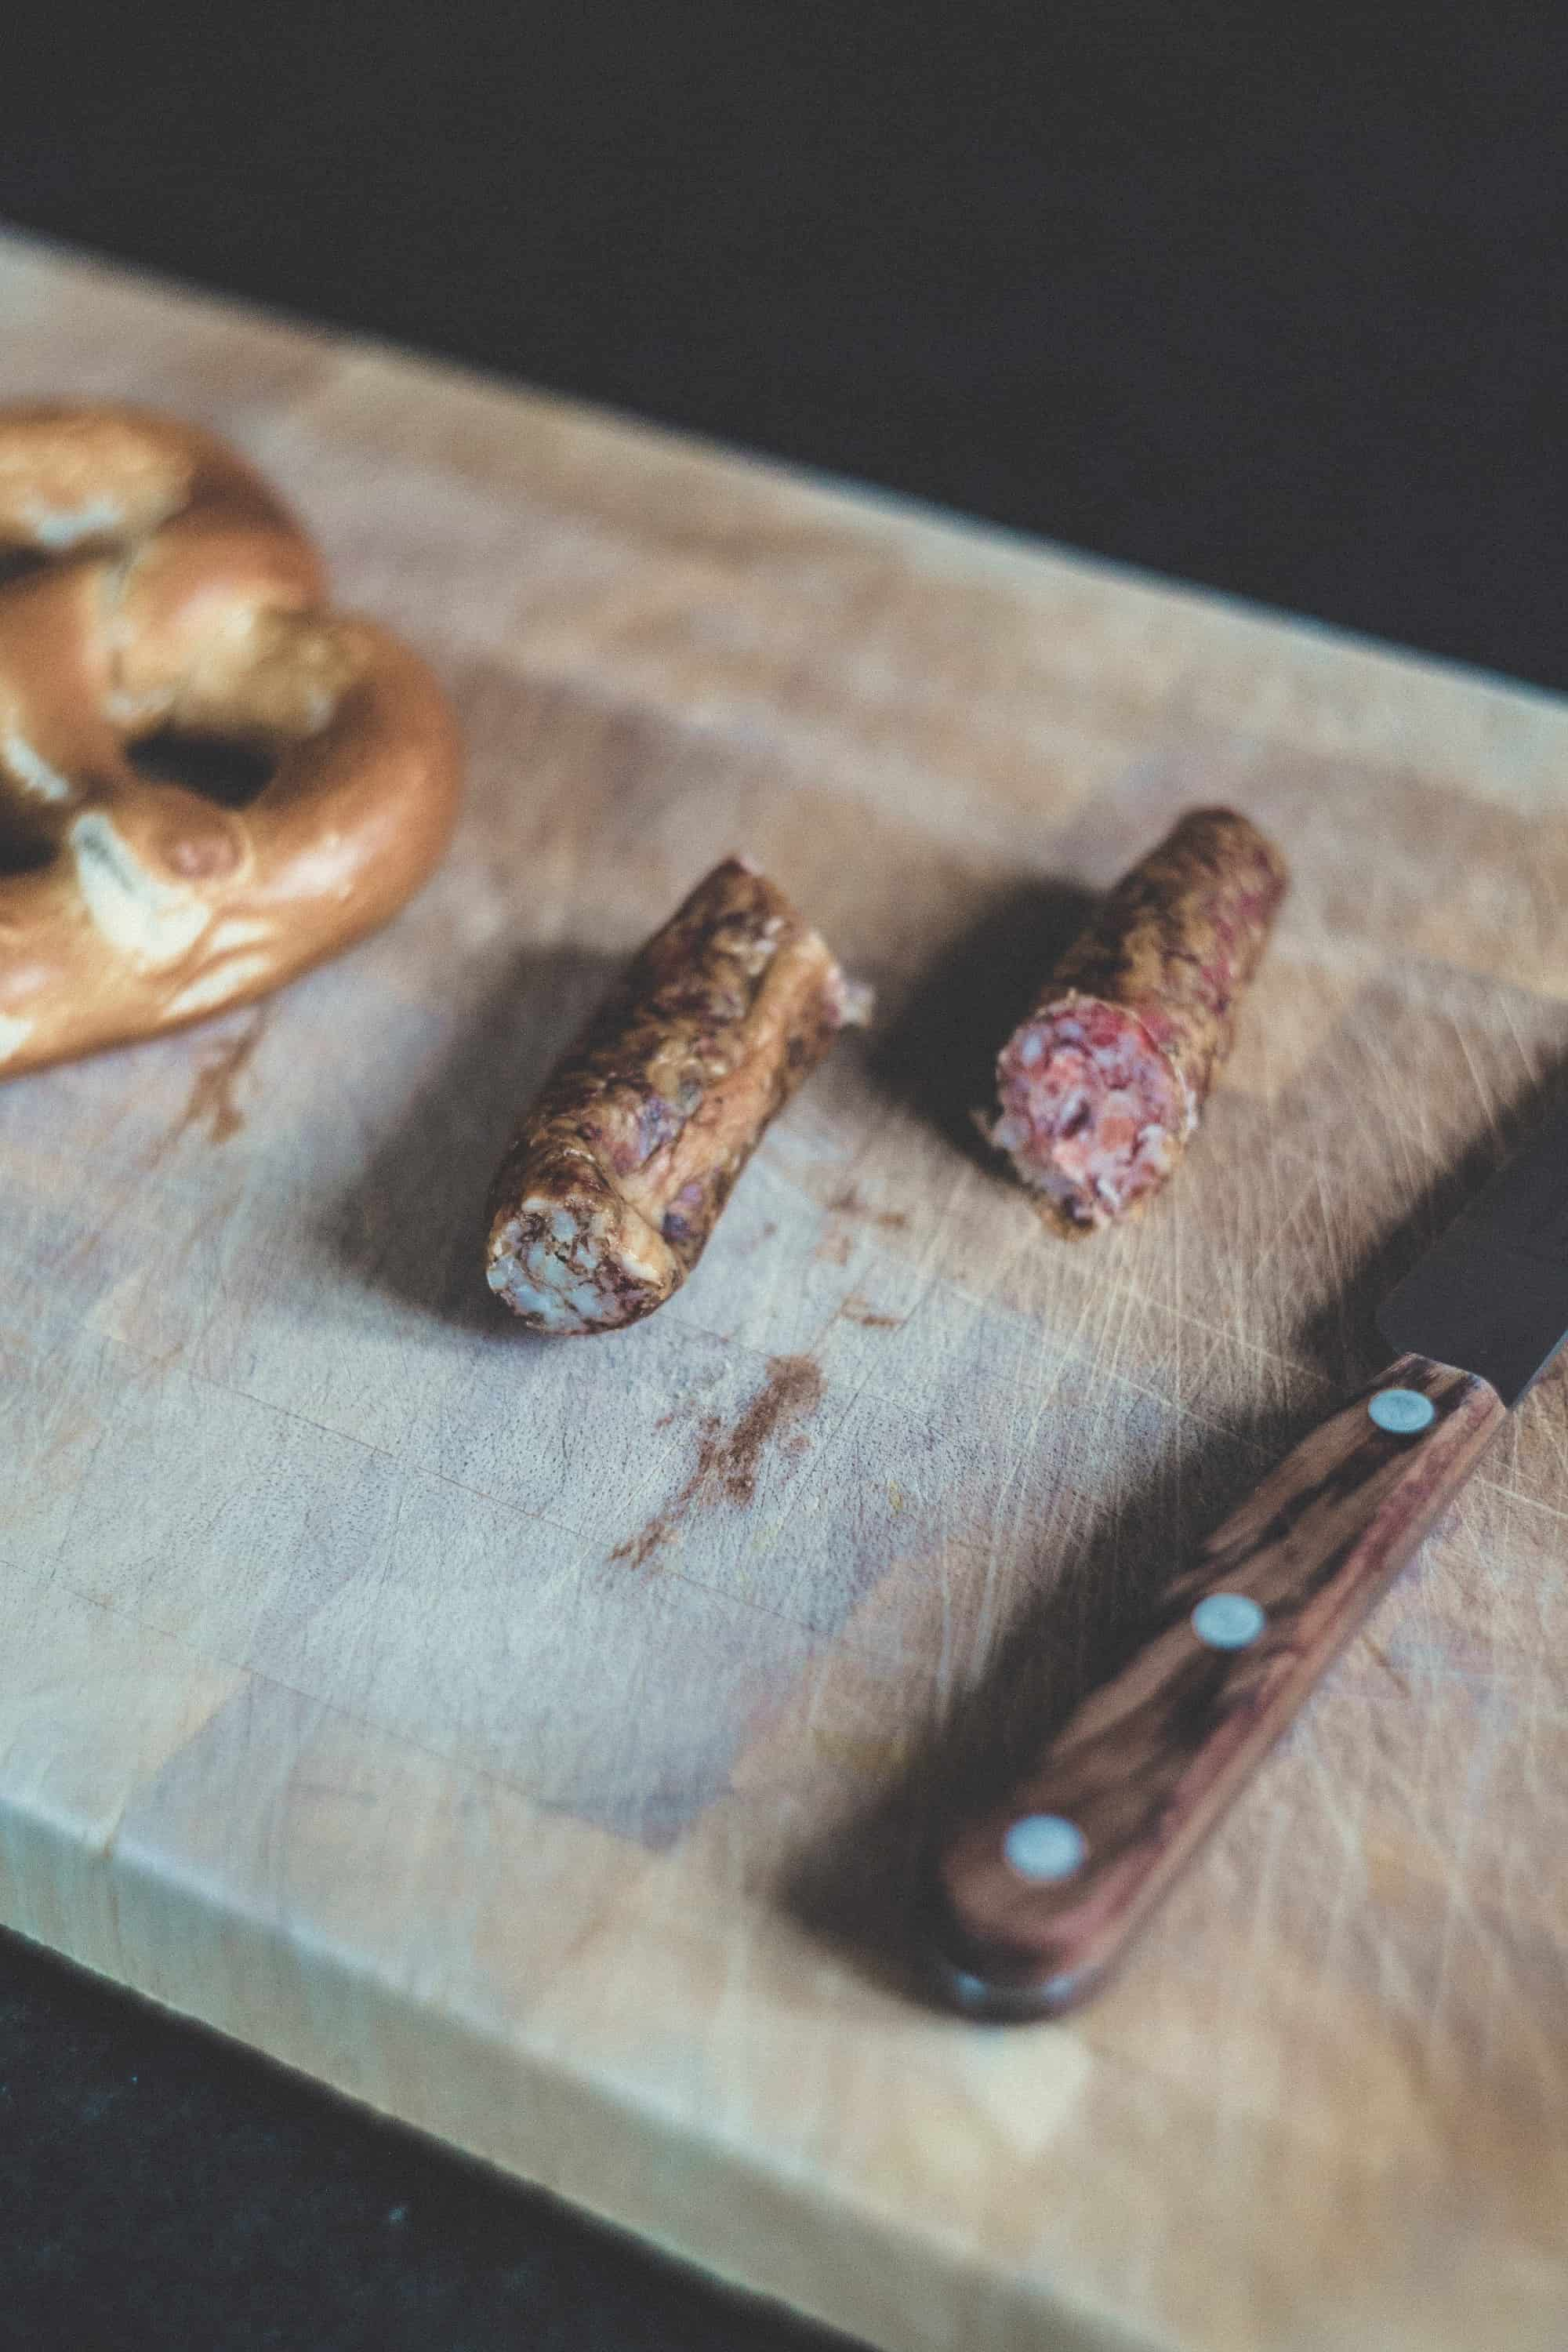 Wooden cutting board with part of a pretzel and sausage cut in half on it